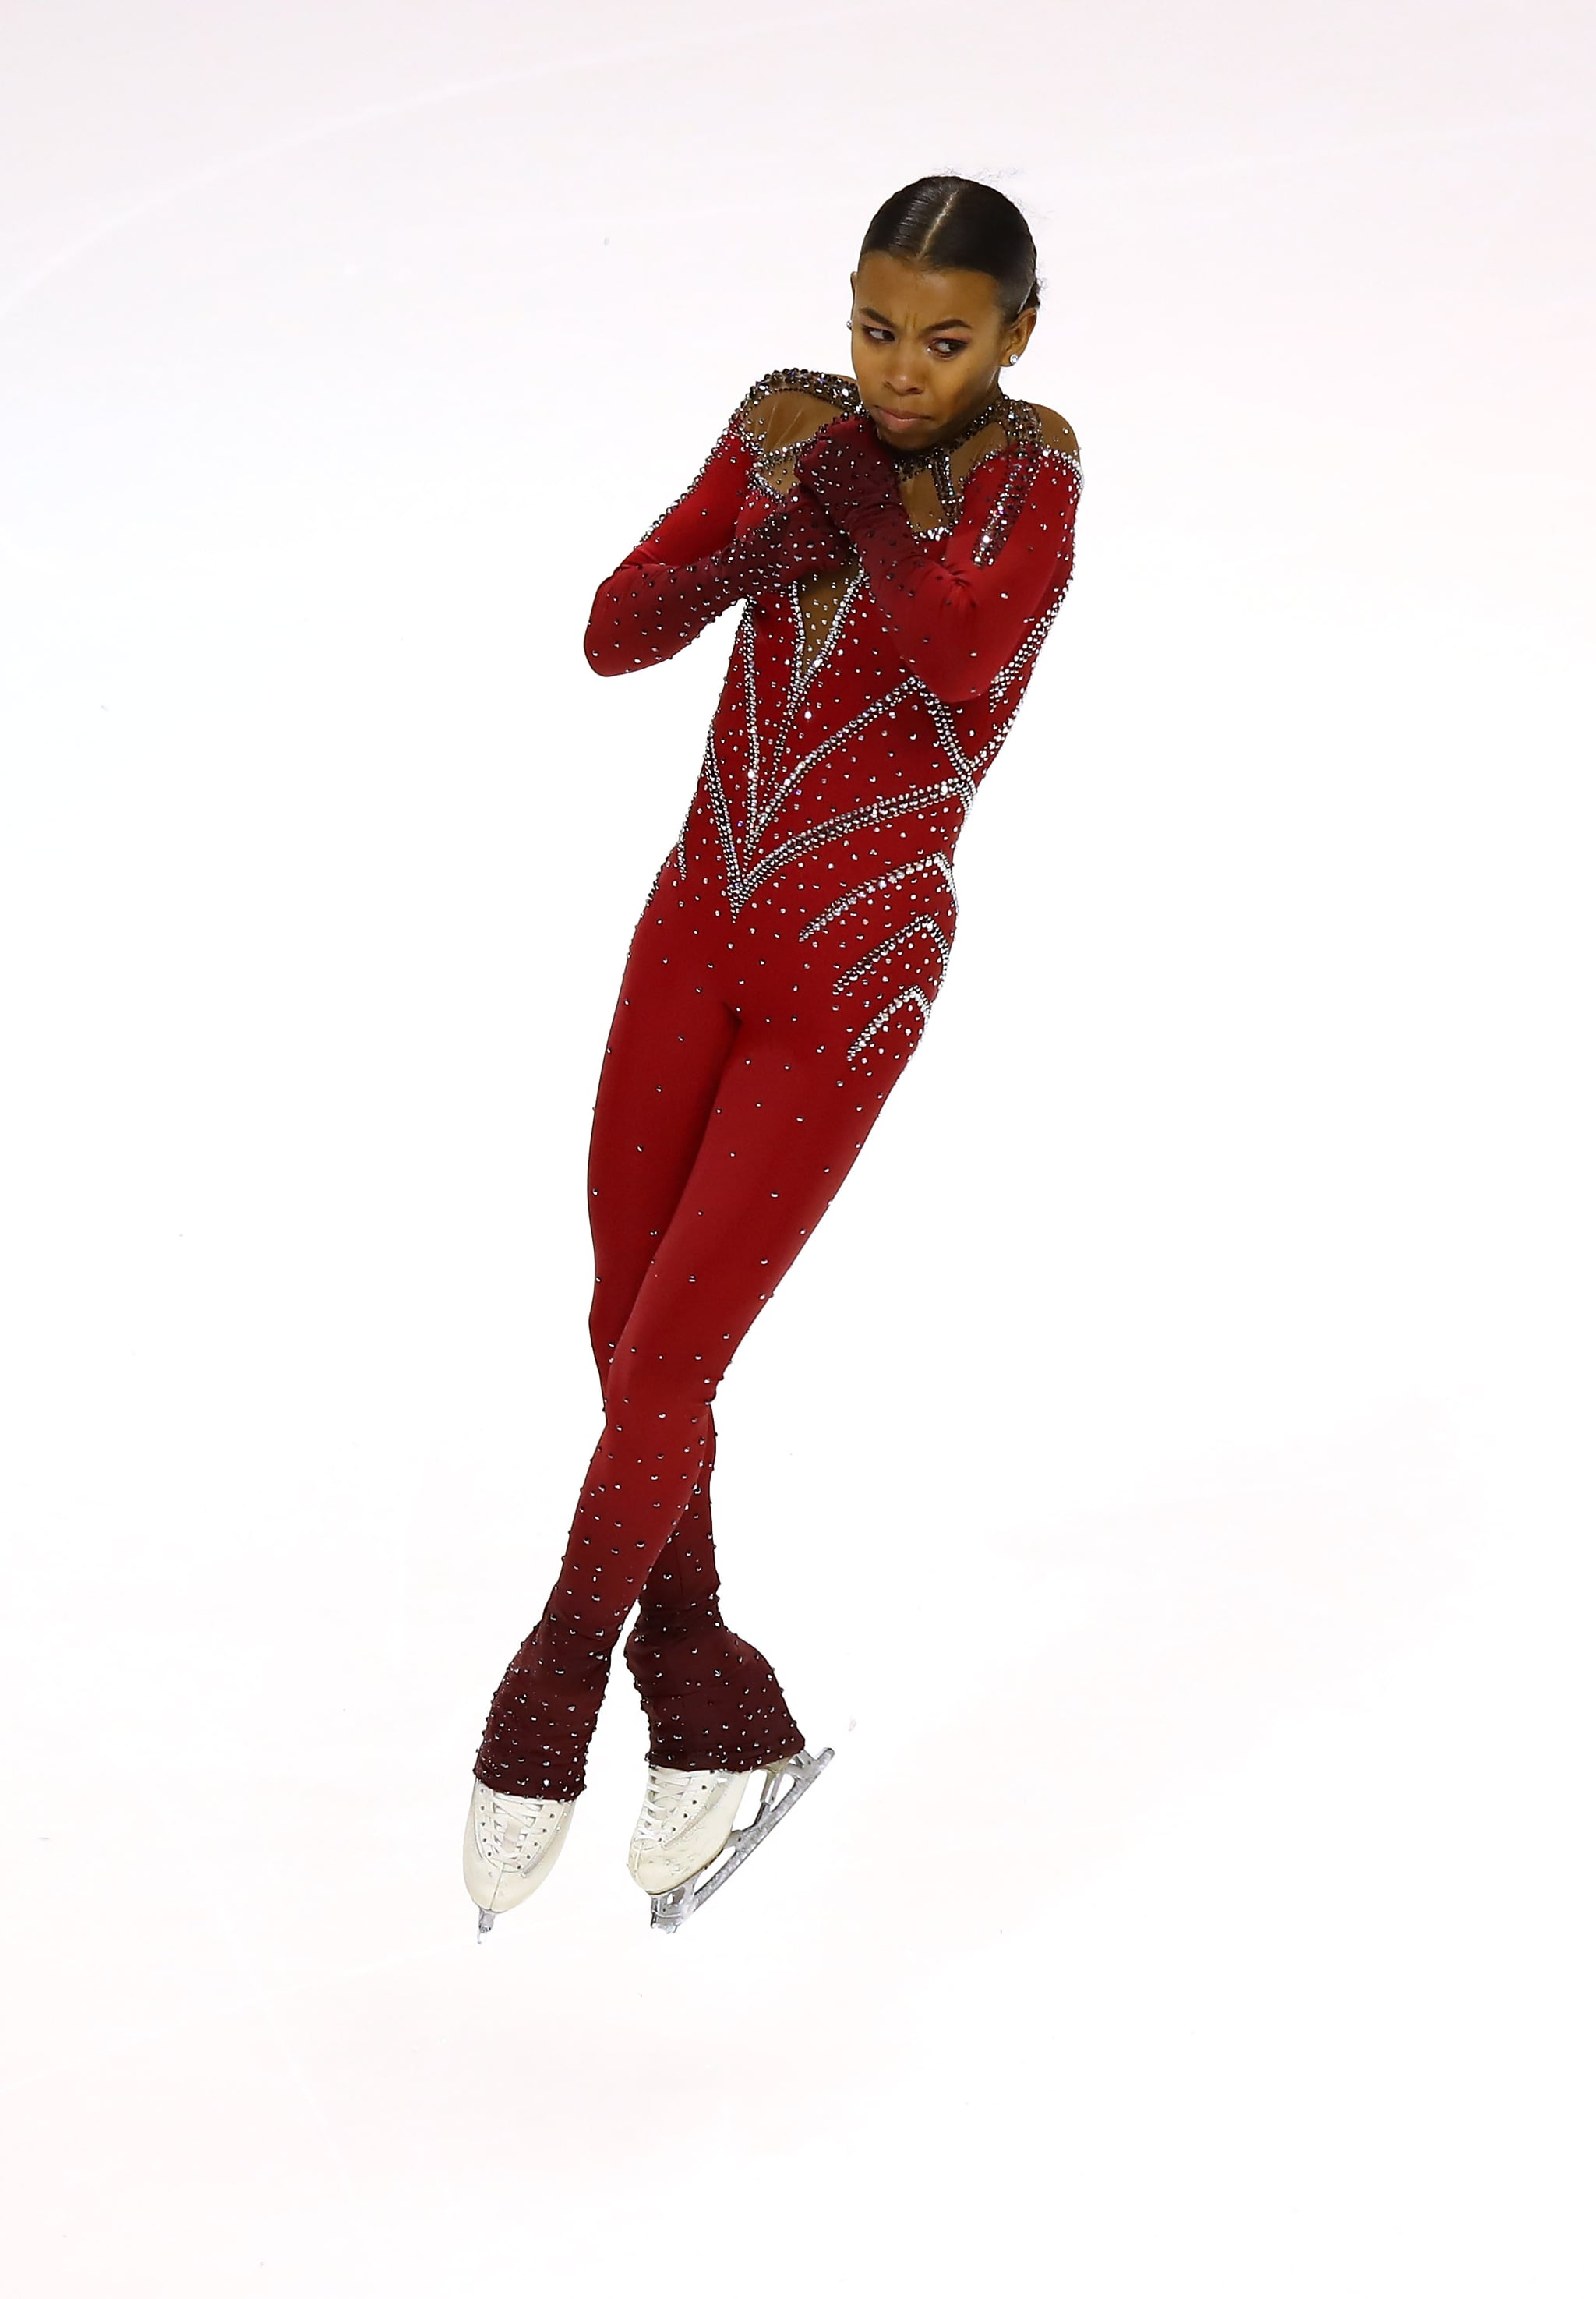 starr andrews figure skating at national championships  share this link copy you might remember figure skater